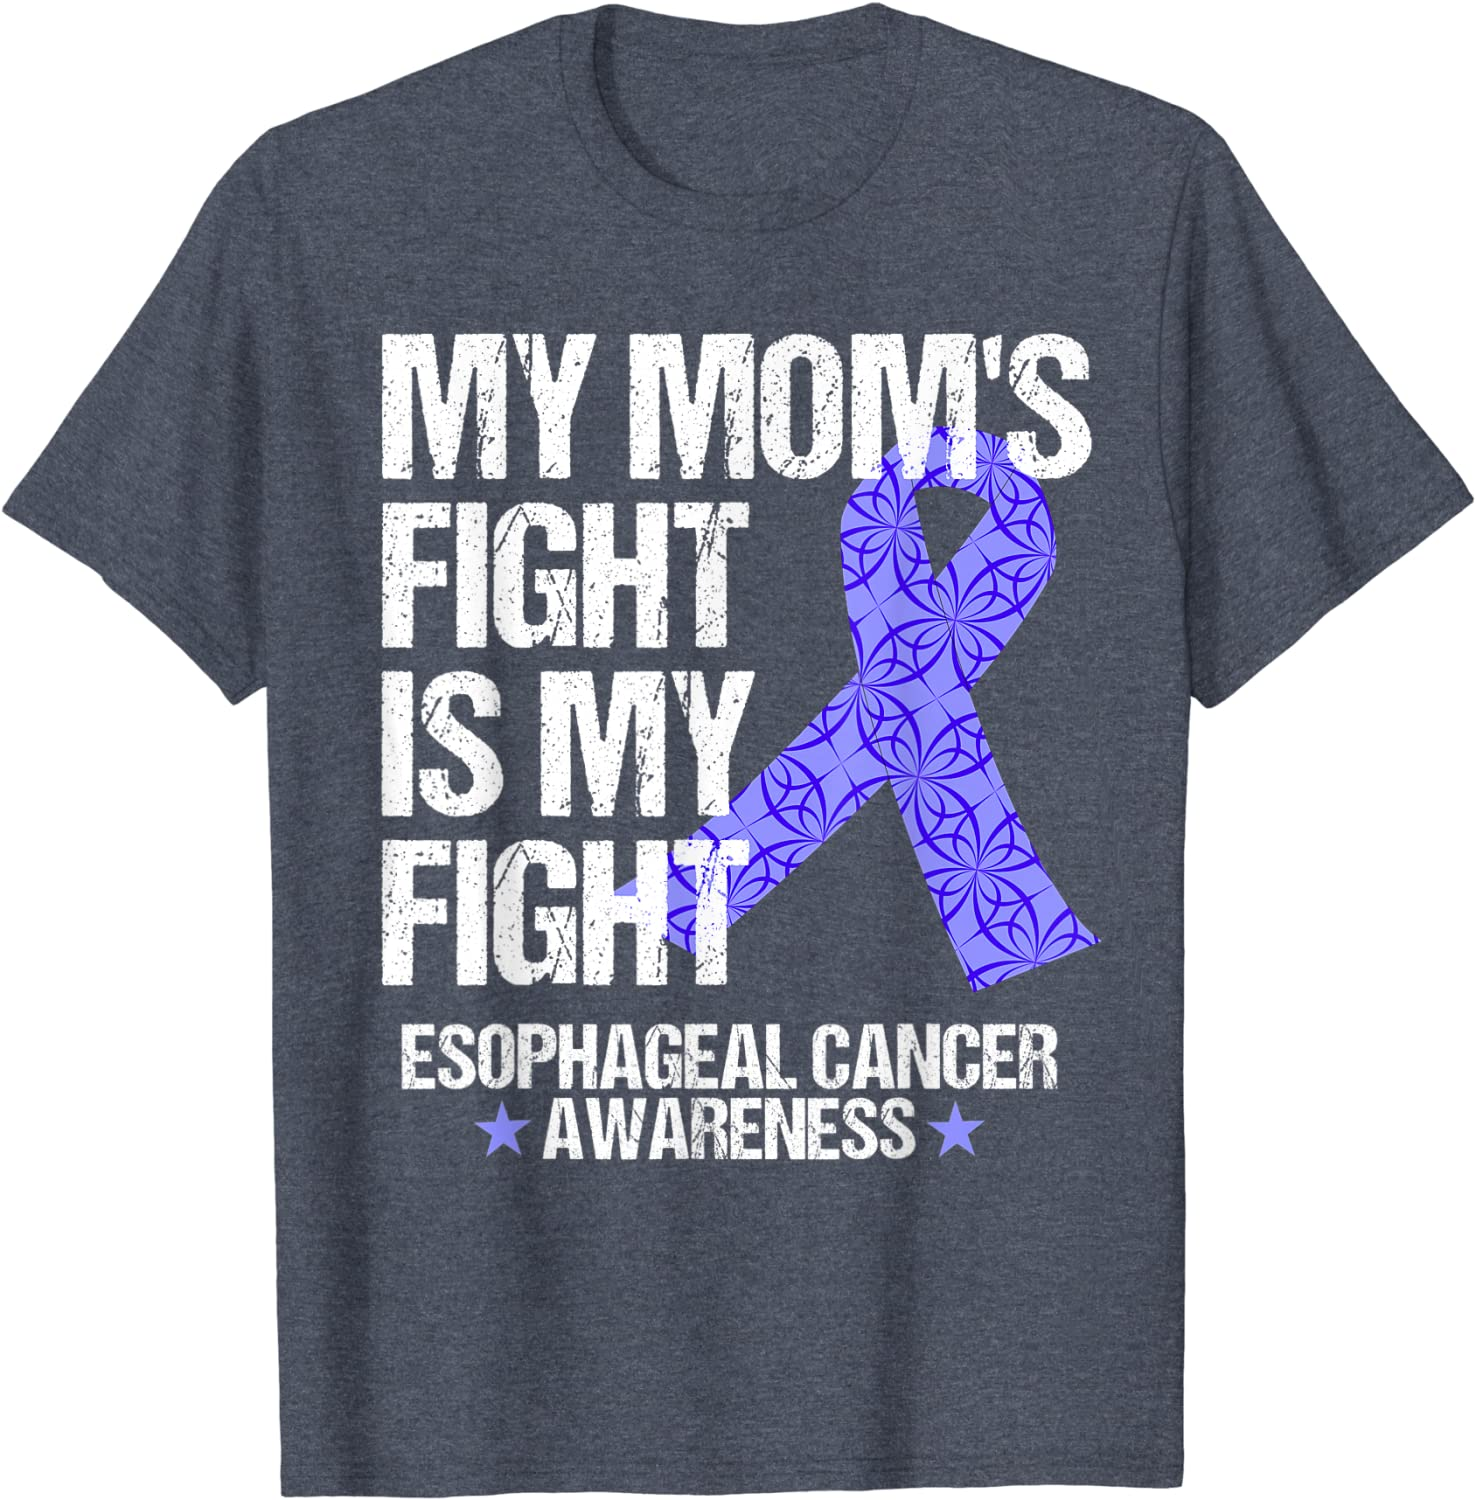 Stomach Cancer Awareness Gift For Stomach Cancer Warrior Fighter Survivor Stomach Cancer Ribbon Tshirt Think Periwinkle Shirt